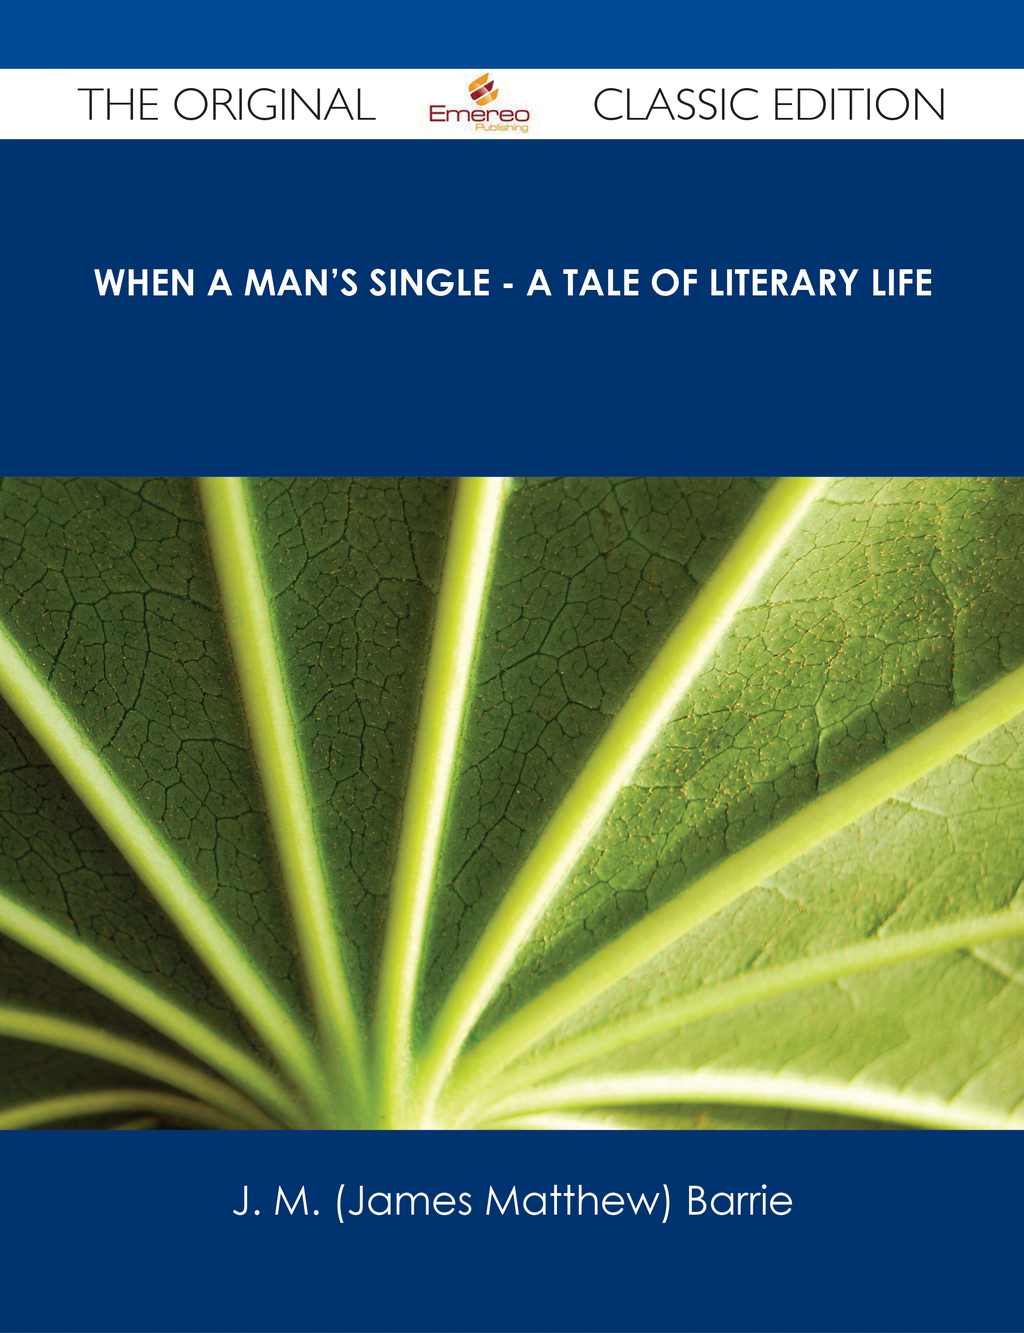 Cover Image: When a Man's Single - A Tale of Literary Life - The Original Classic Edition